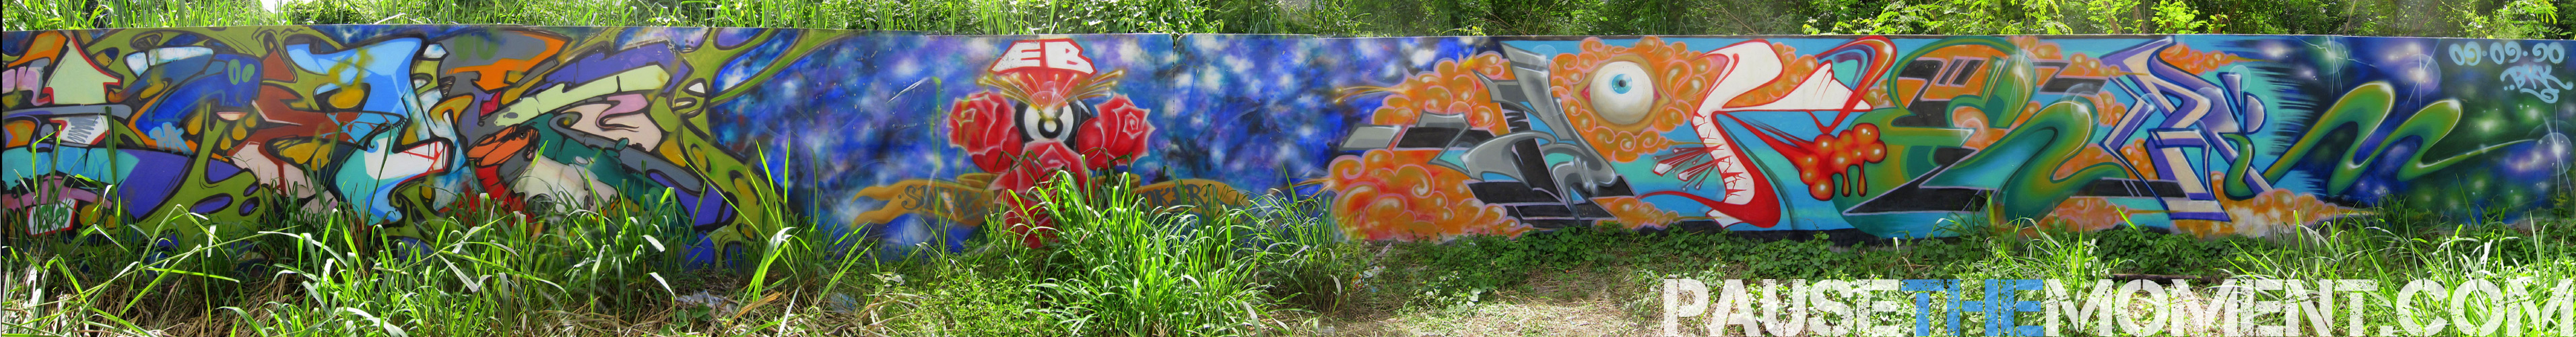 Panoramic Photo of Graffiti in Chiang Mai, Thailand